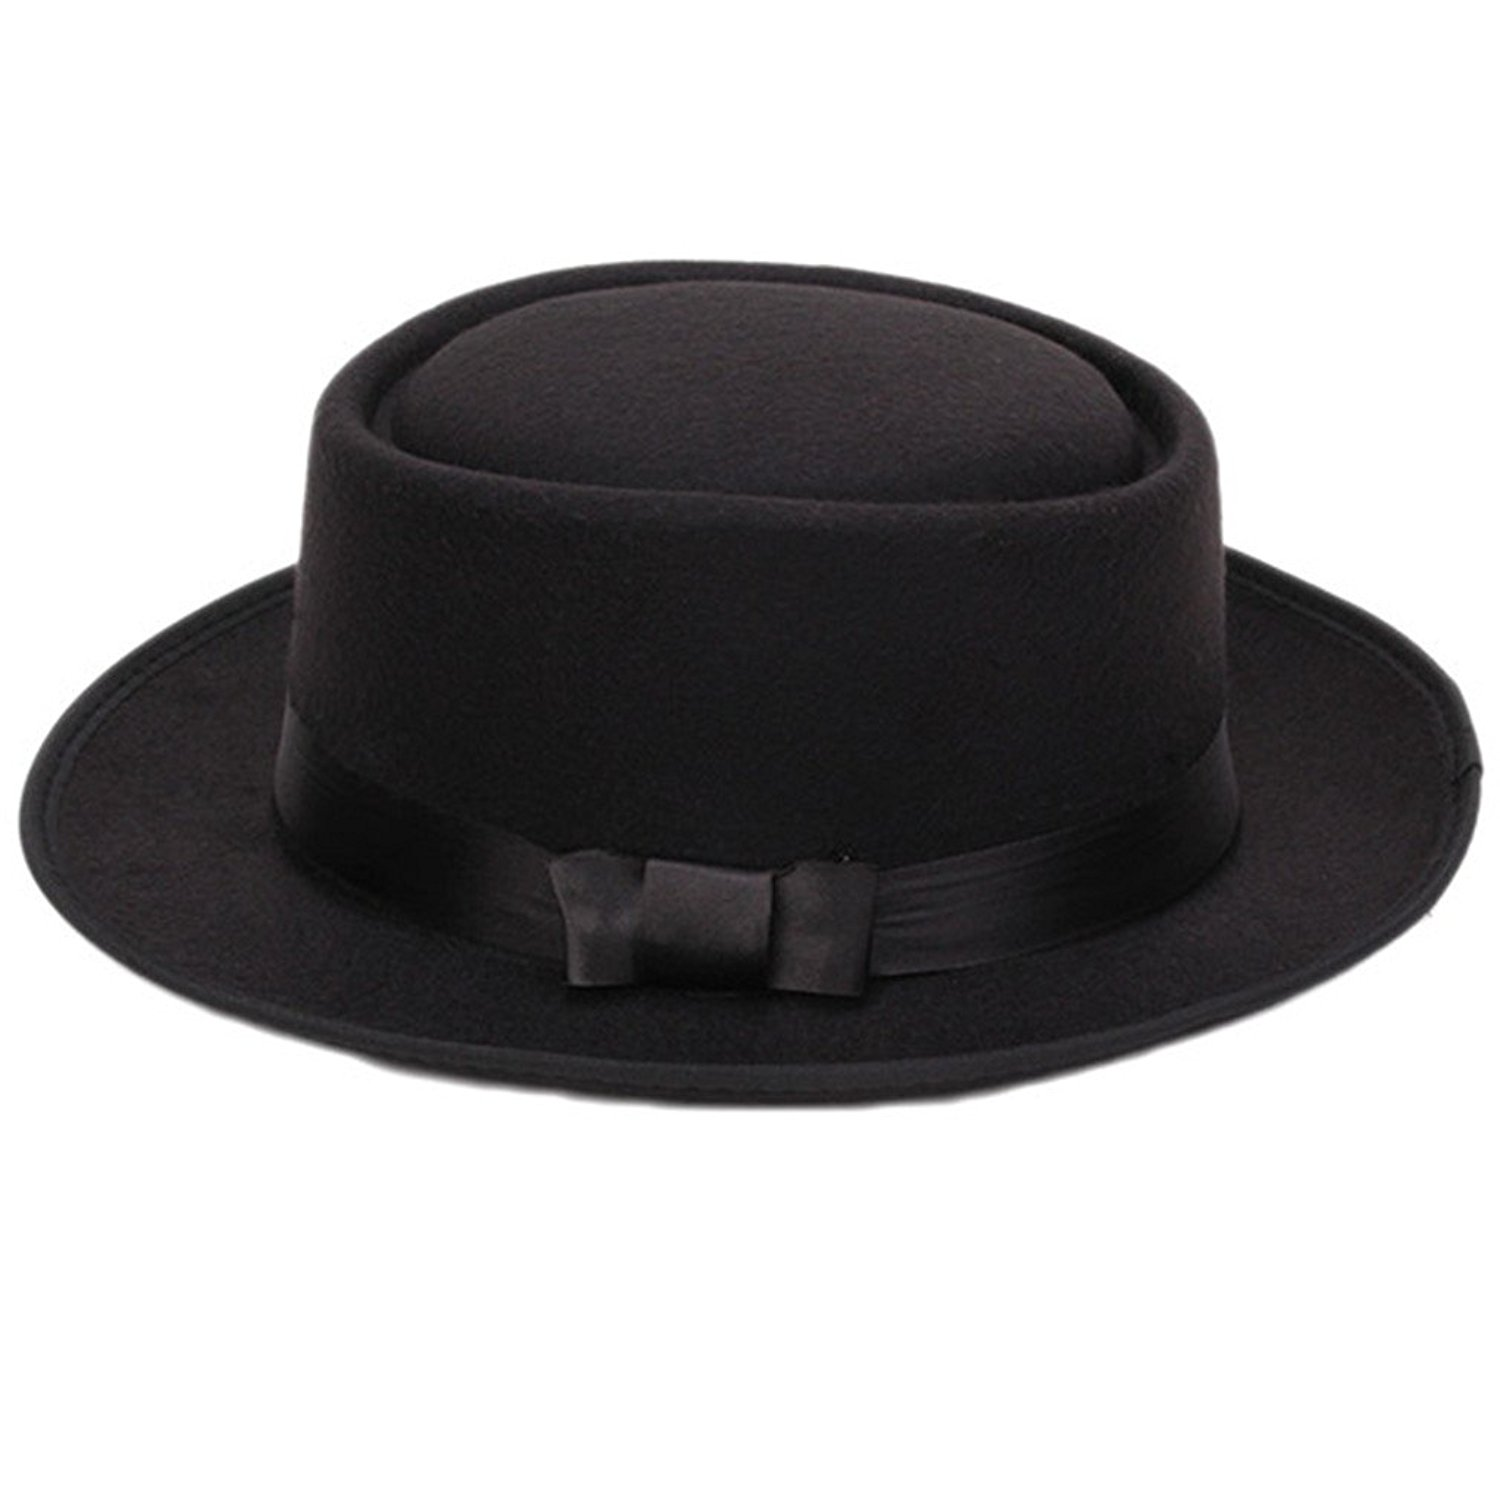 cae4986c5eee8 Fedoras Cheap Fedoras New Hot Women Men Cool Classic Jazz Hats.We offer the  best wholesale price